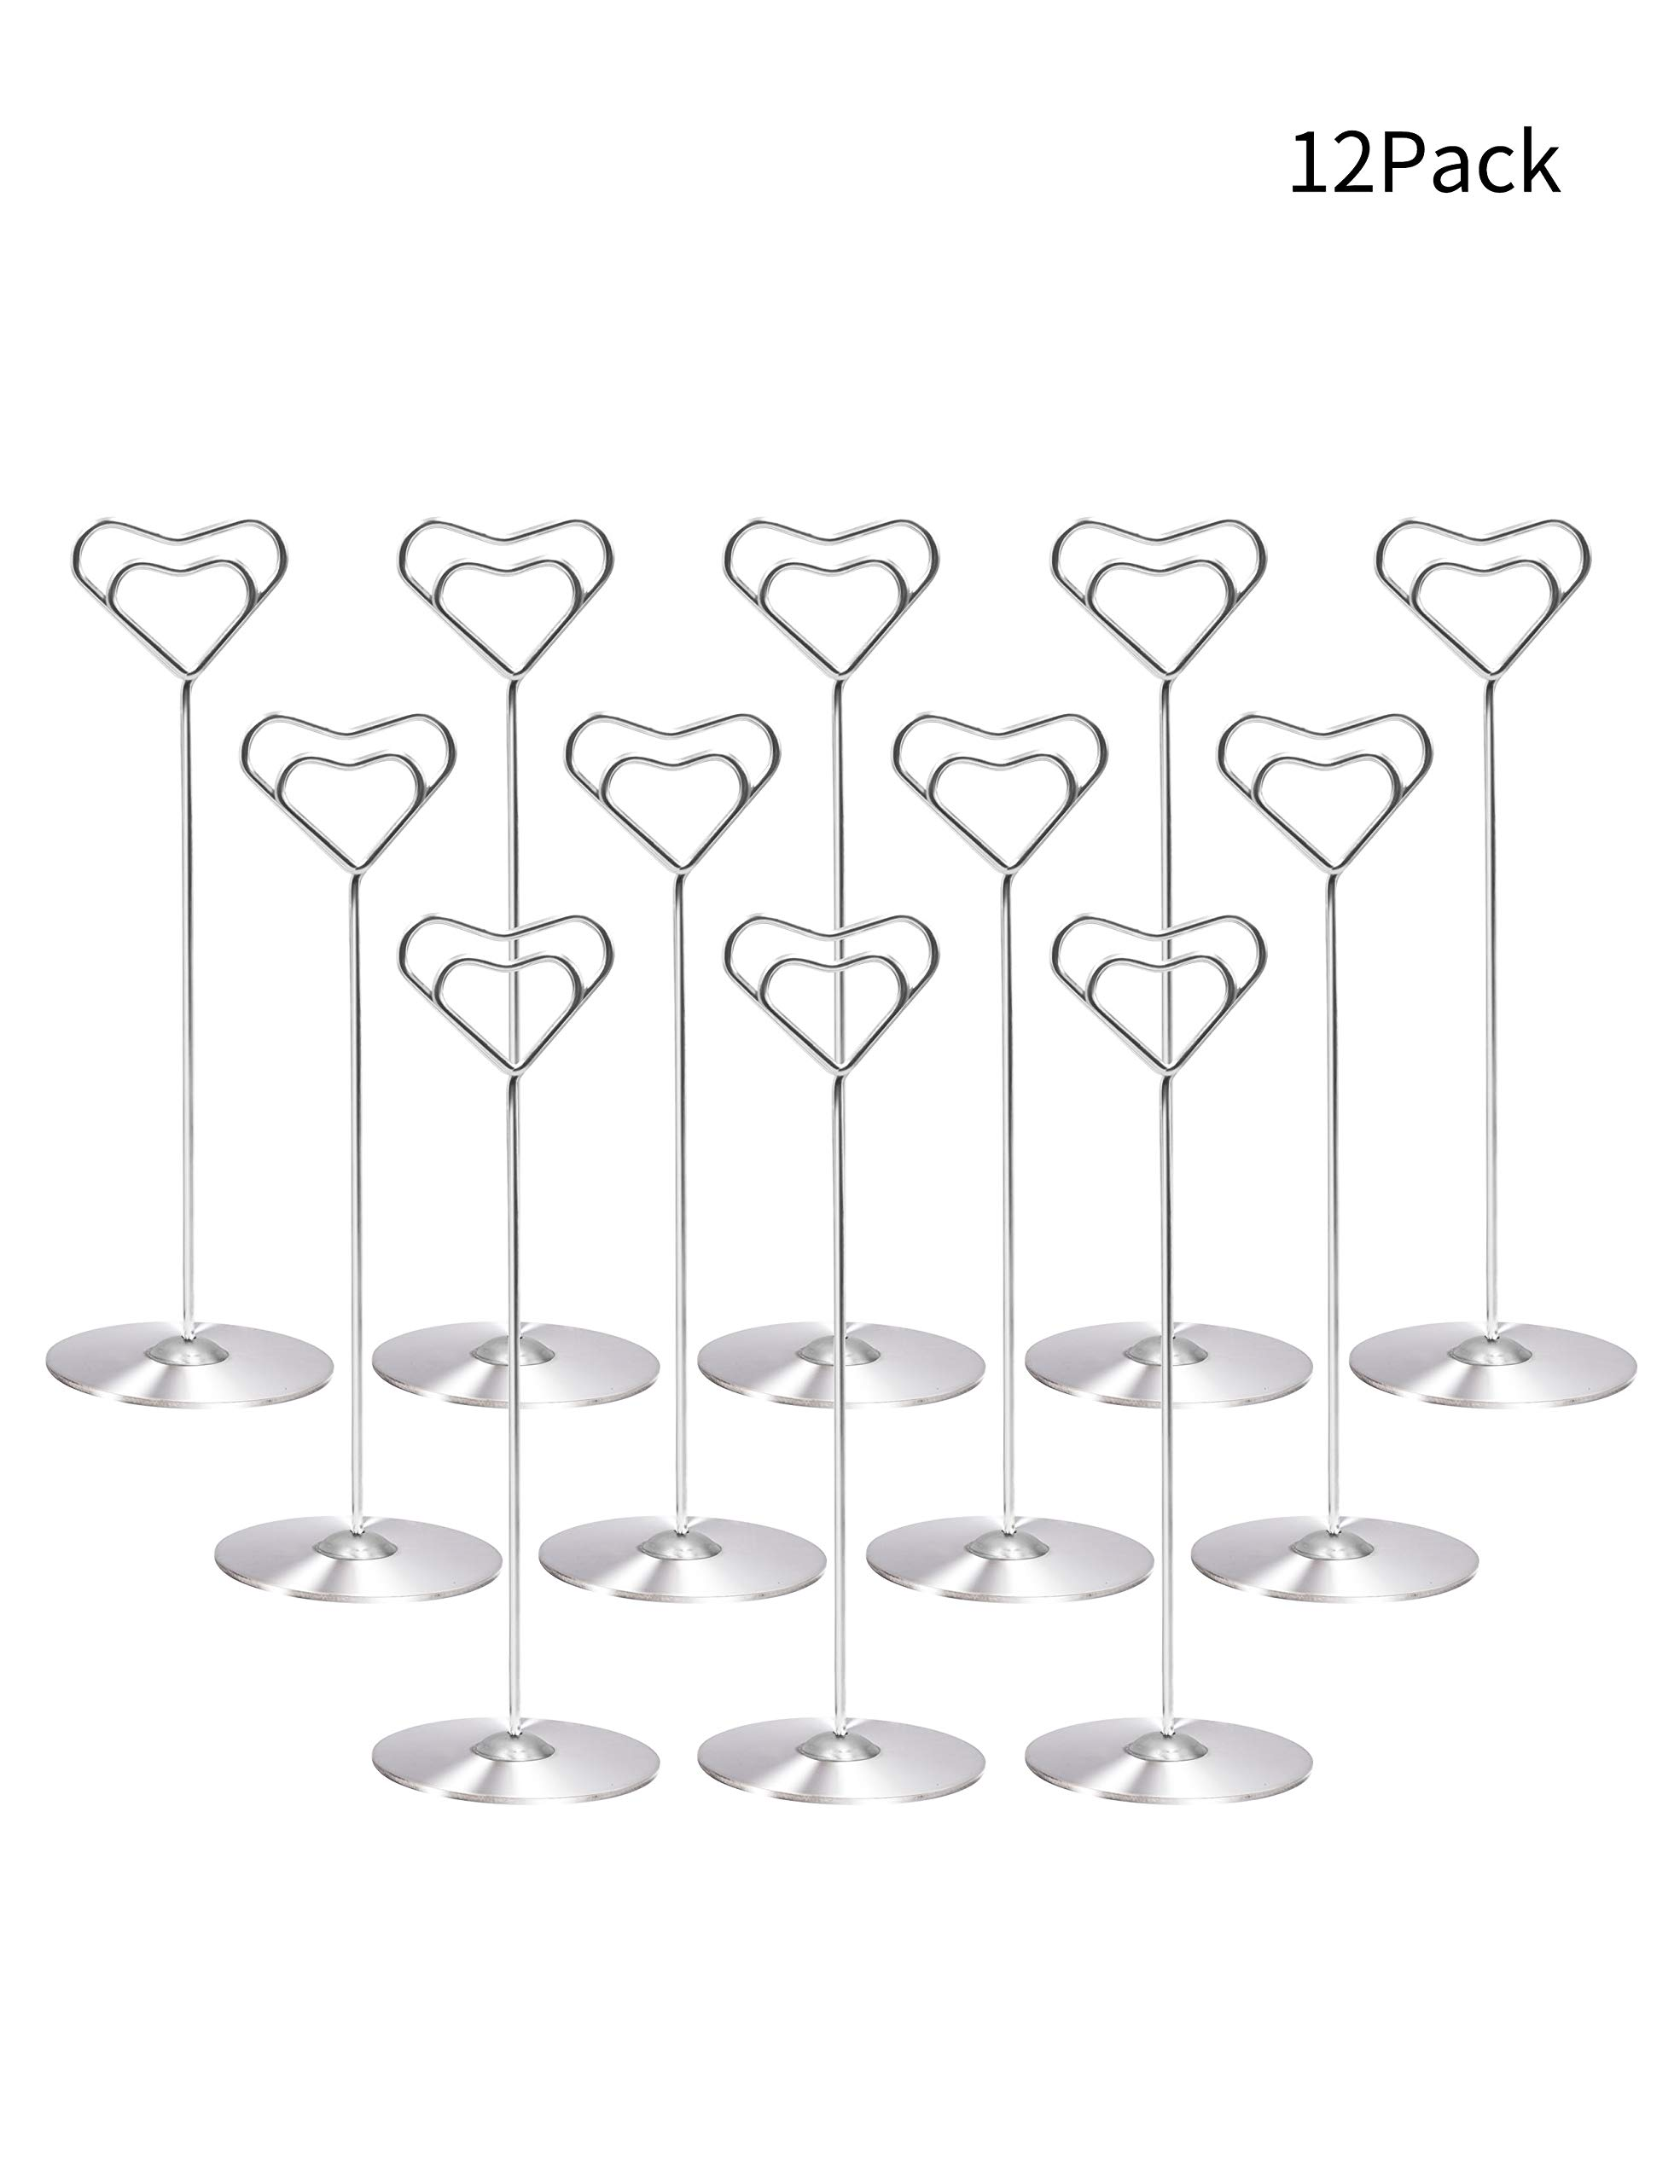 Place Card Holders Table Number Holder 8'' Stainless Steel Set of 12 Table Card Holder Table Number Stand by Starsbasics (8-Inch,Set of 12)